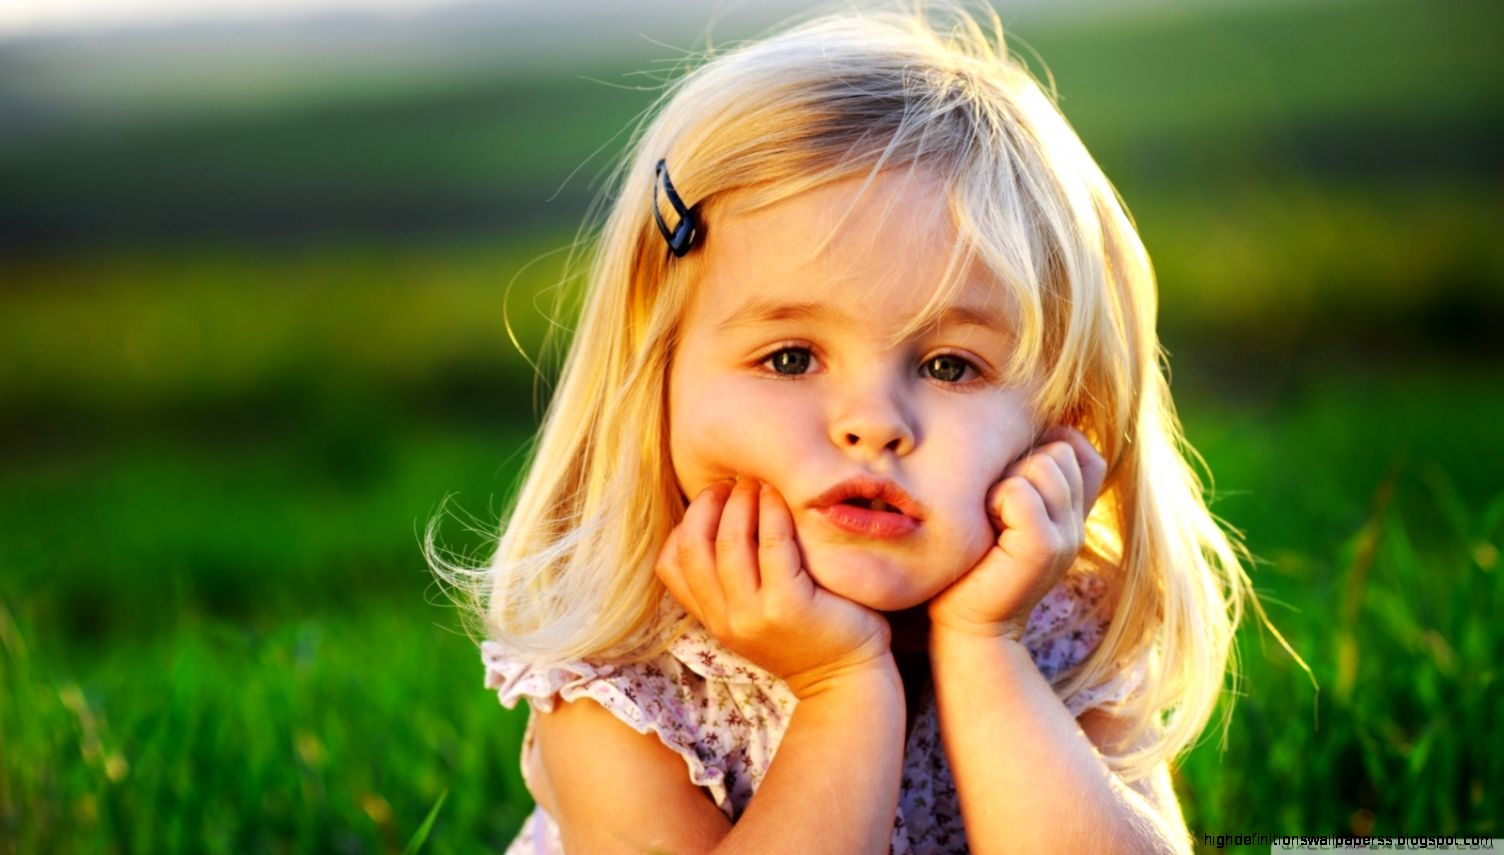 Sad Looking Kids Hd Fullscreen Photos Download